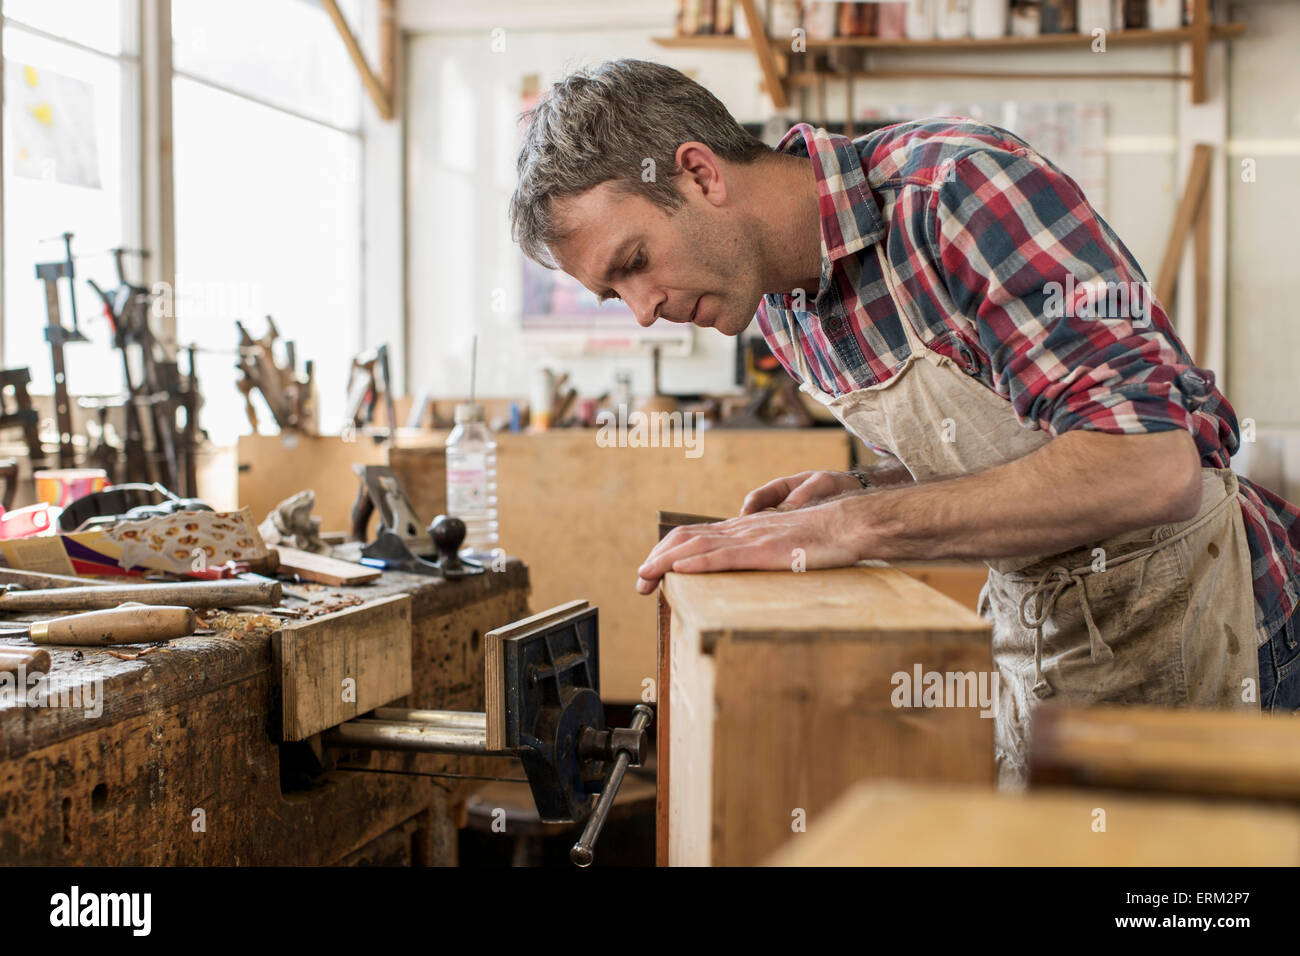 Perfect An Antique Furniture Restorer In His Workshop Using A Hand Tool To Smooth A  Wooden Object.